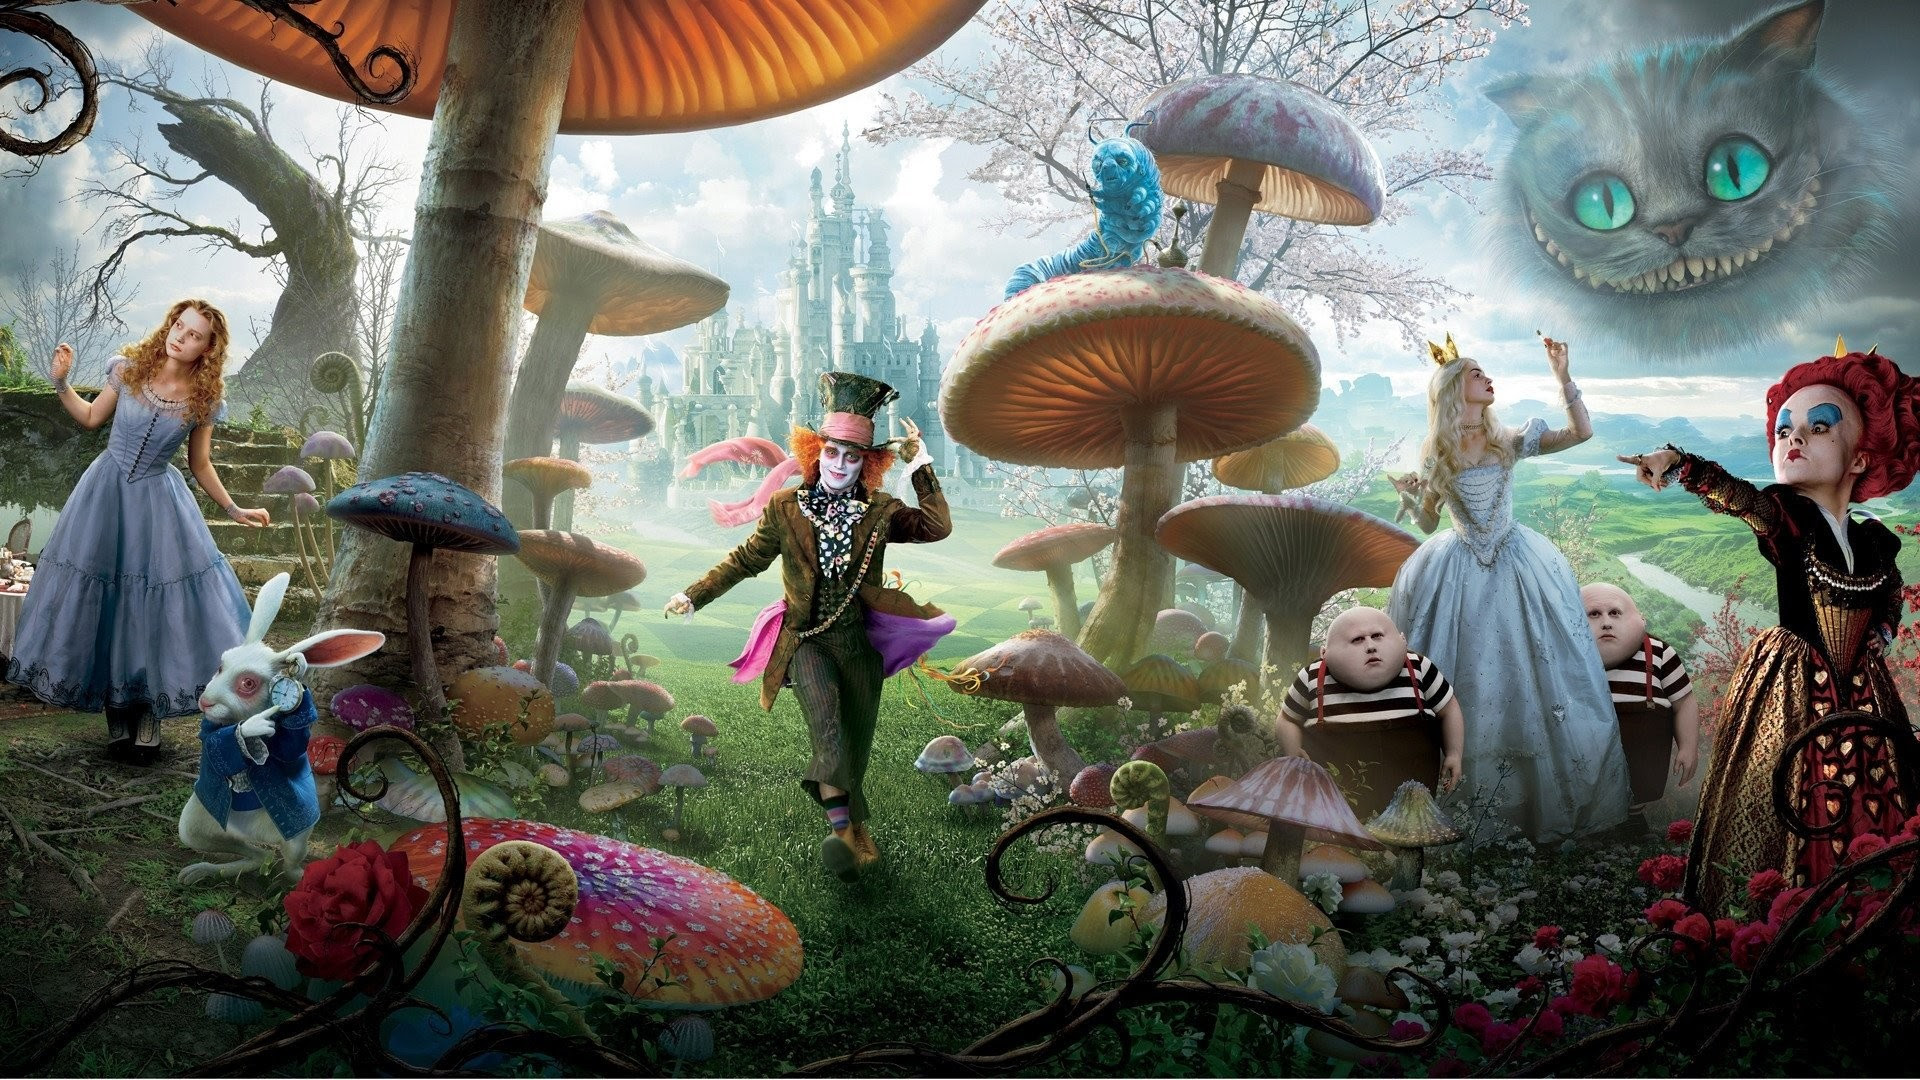 Alice In Wonderland Hd Wallpapers 69 Images - alice in wonderland roblox id